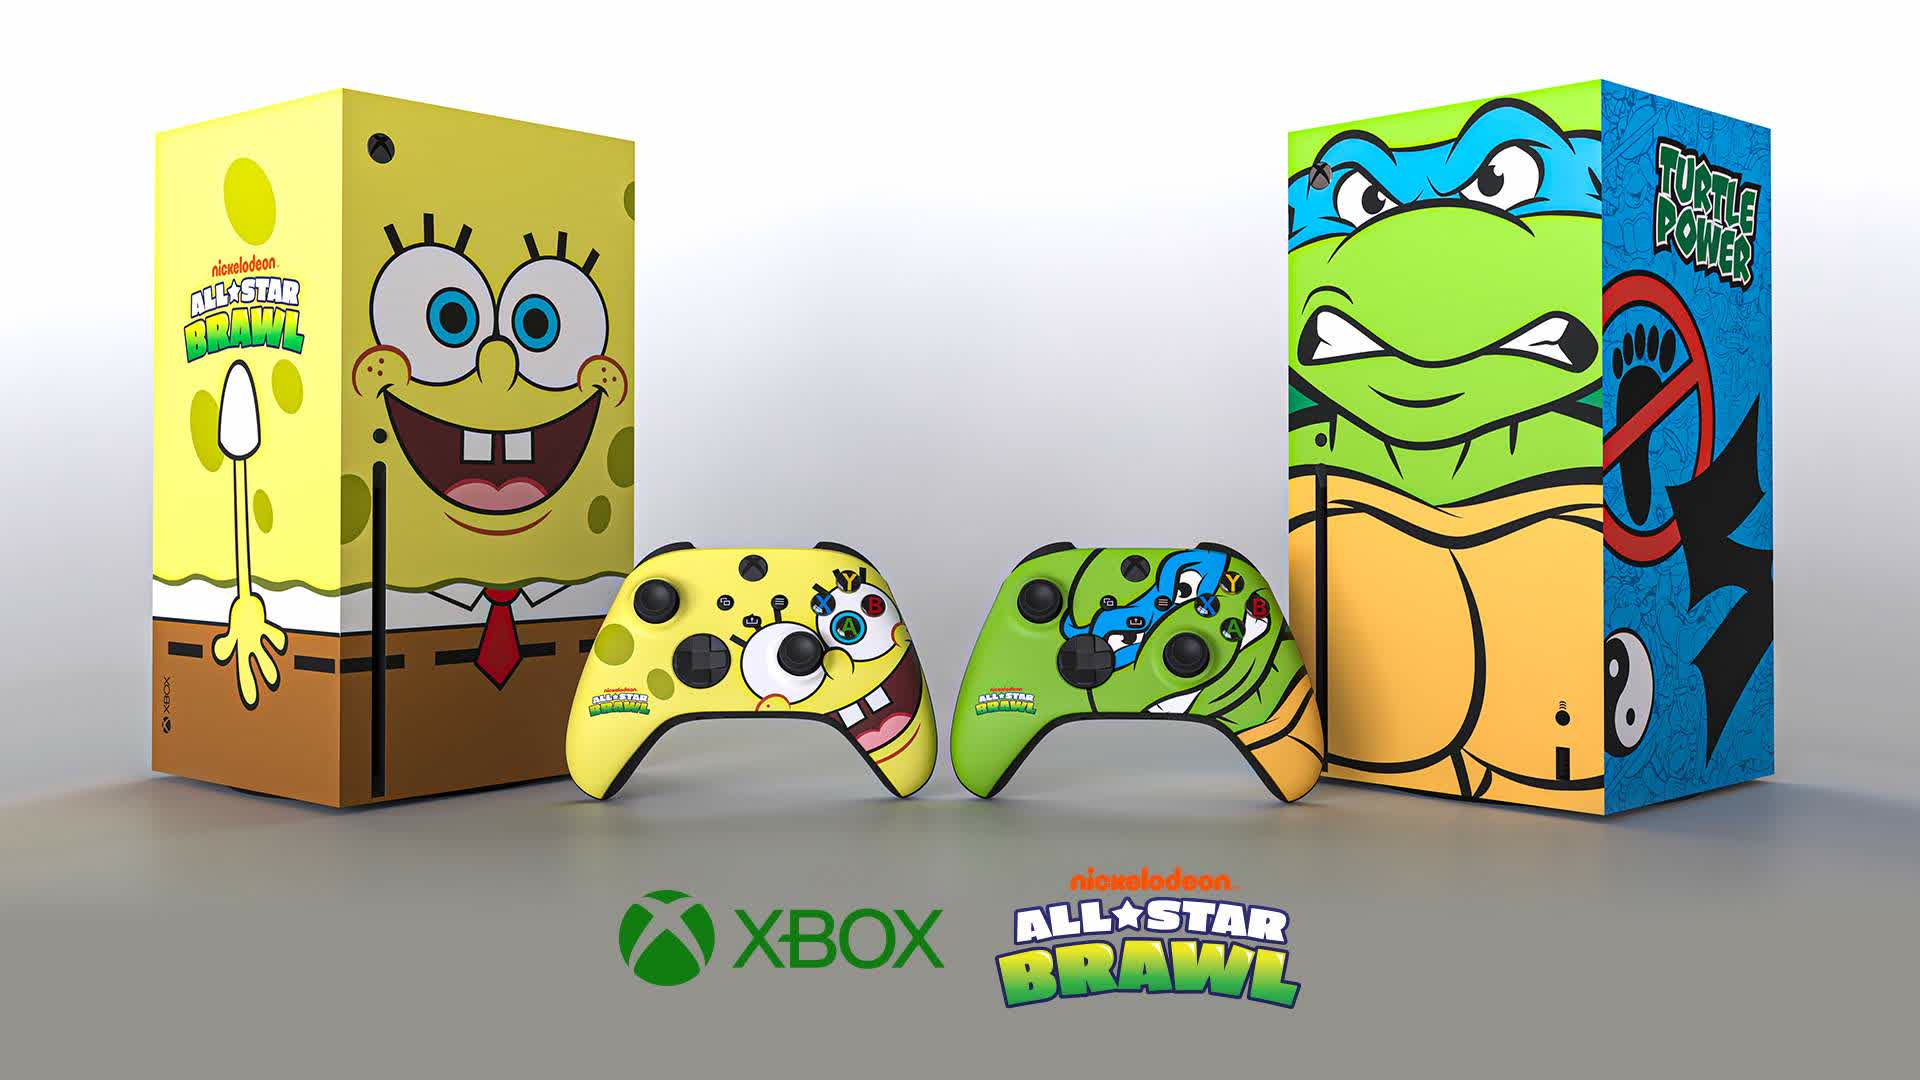 Microsoft is giving away two custom Xbox Series X consoles to celebrate Nickelodeon All-Star Brawl